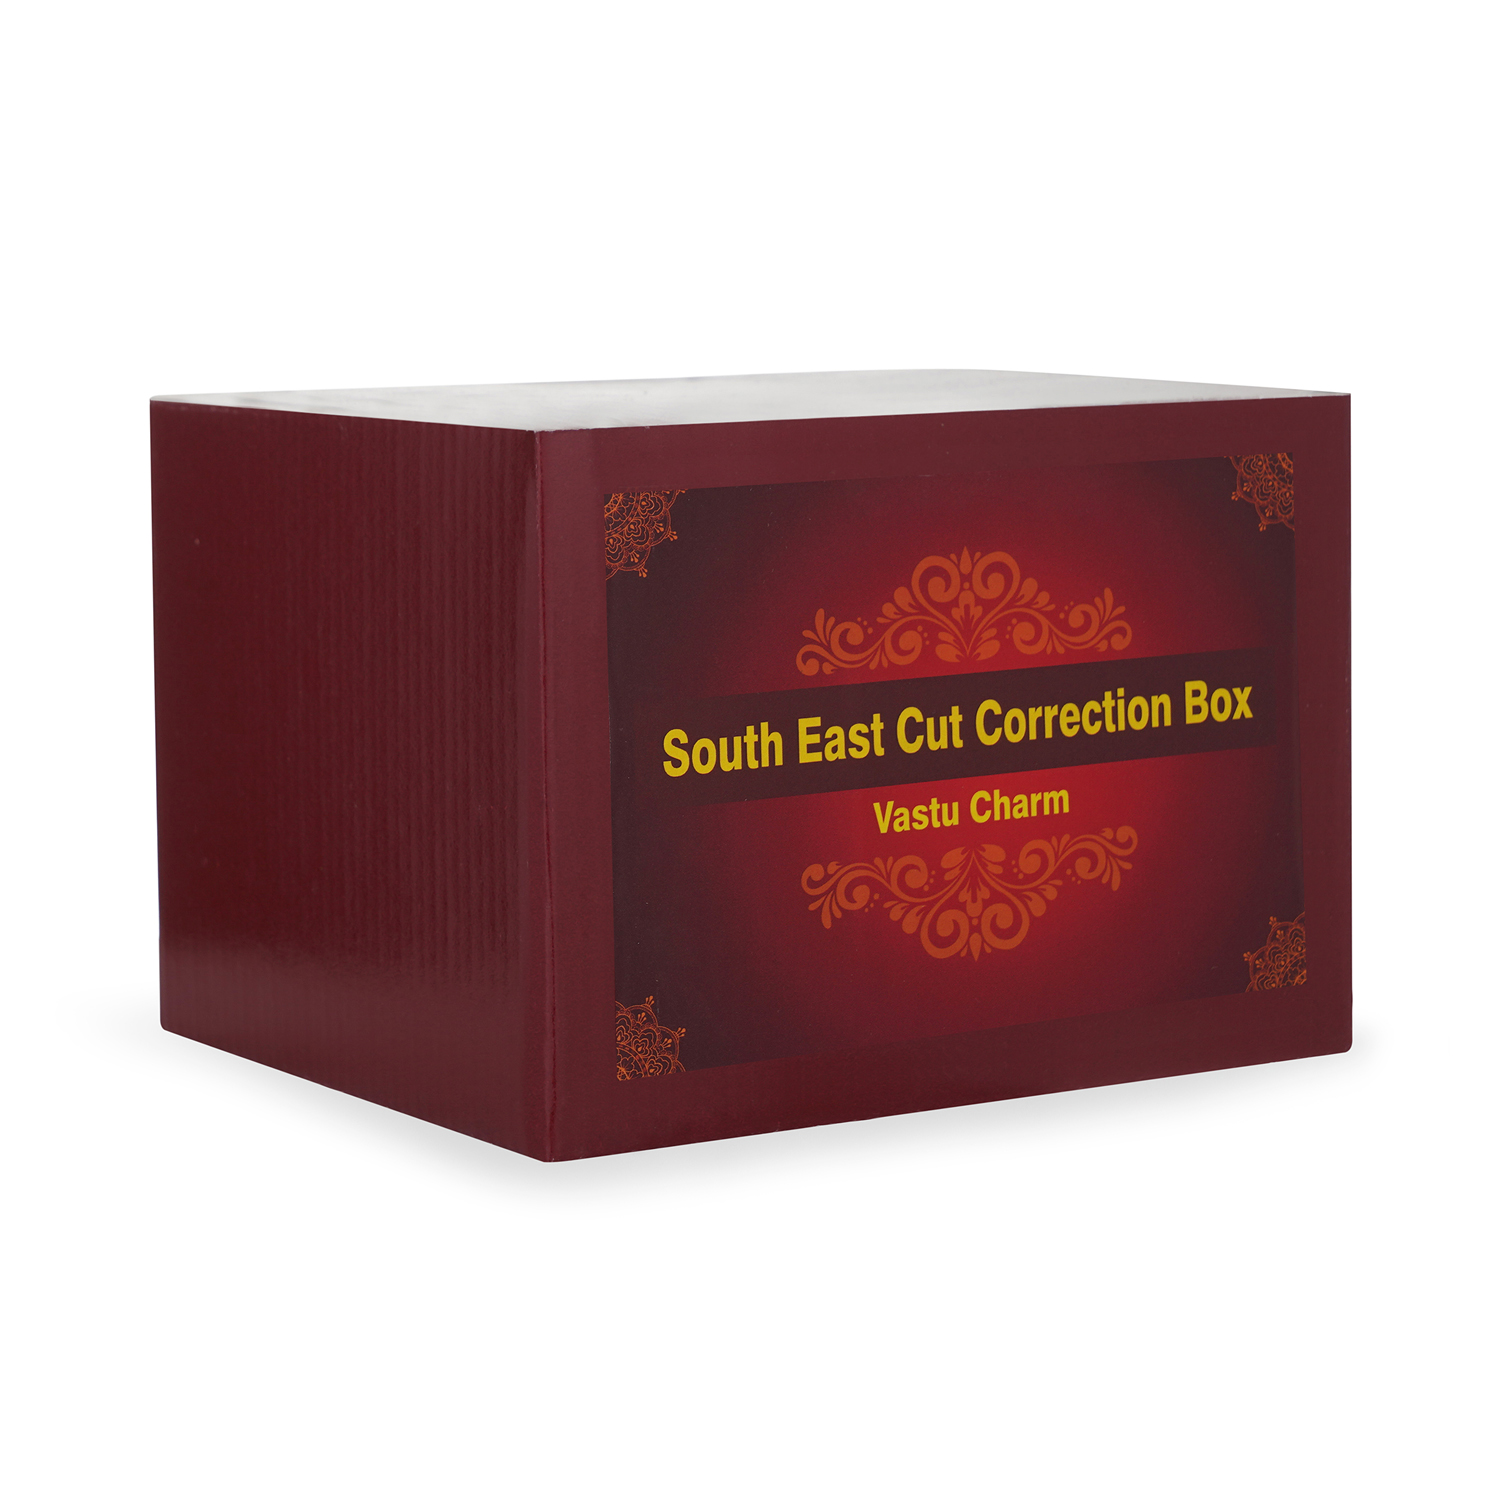 South East Cut Correction Box